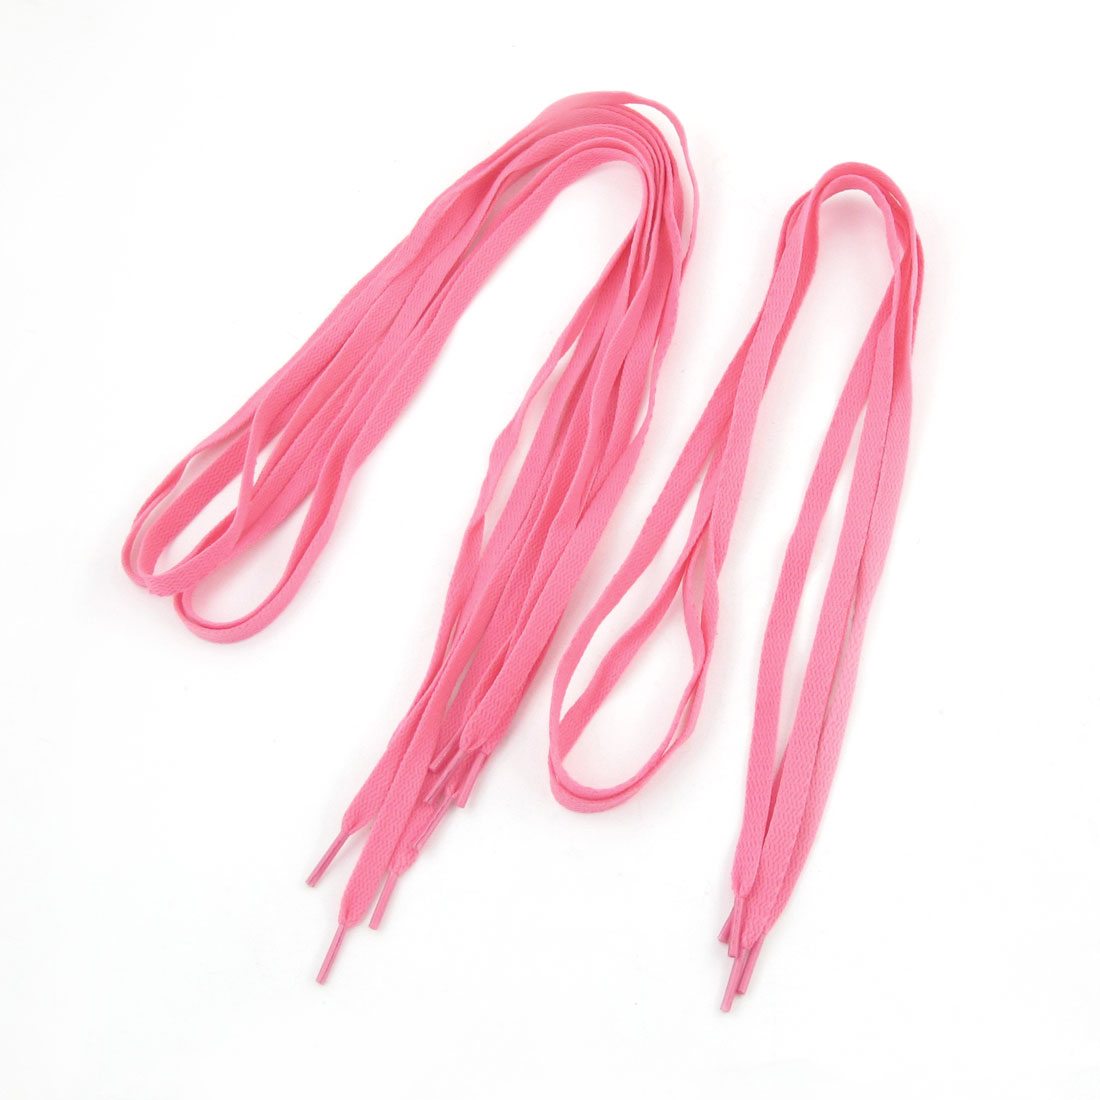 Ladies Plastic Tips 116cm Length Pink Flat Wide Shoe Laces Strings 6 Pcs